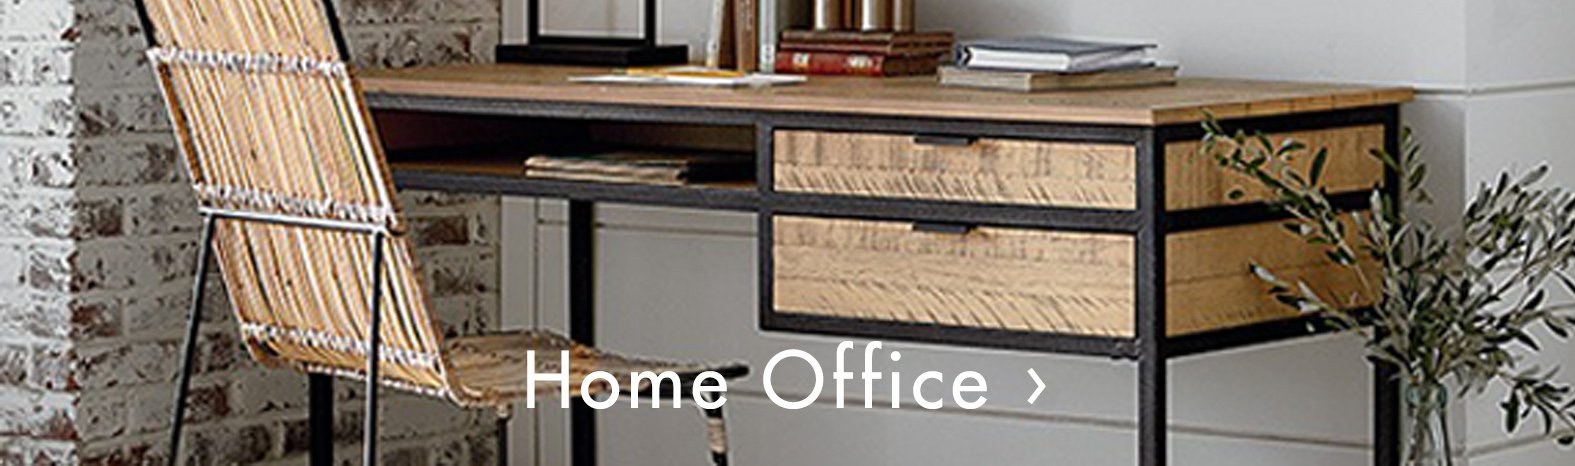 Shop Magnolia Home Office Furniture at RC Willey